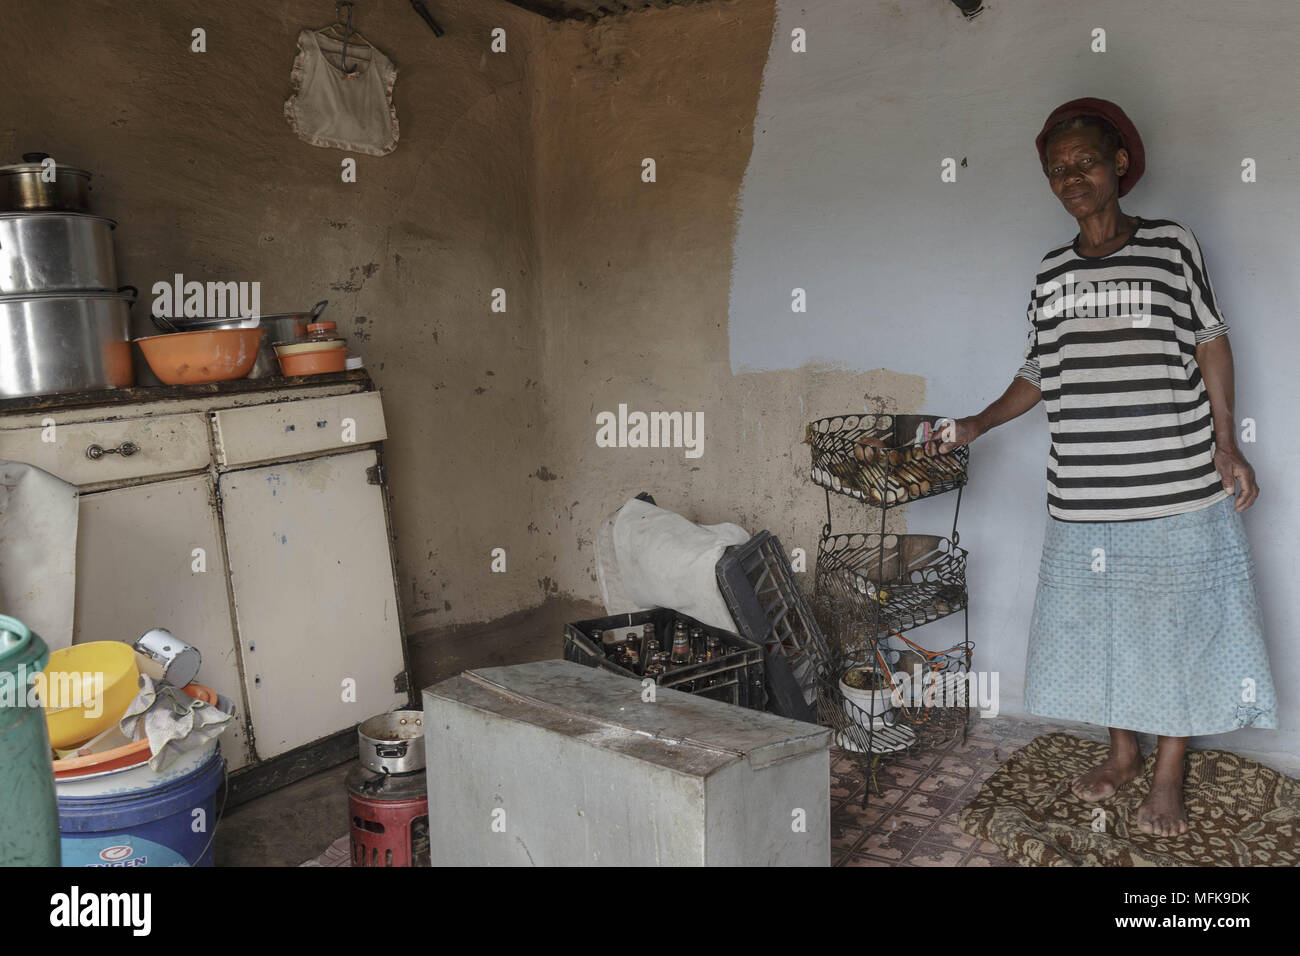 January 13 2018 Matatiele Eastern Cape South Africa Martha Wiring A House In 67 Stands The Kitchen Of Her Small Mud Credit Image Stefan Kleinowitz Via Zuma Wire